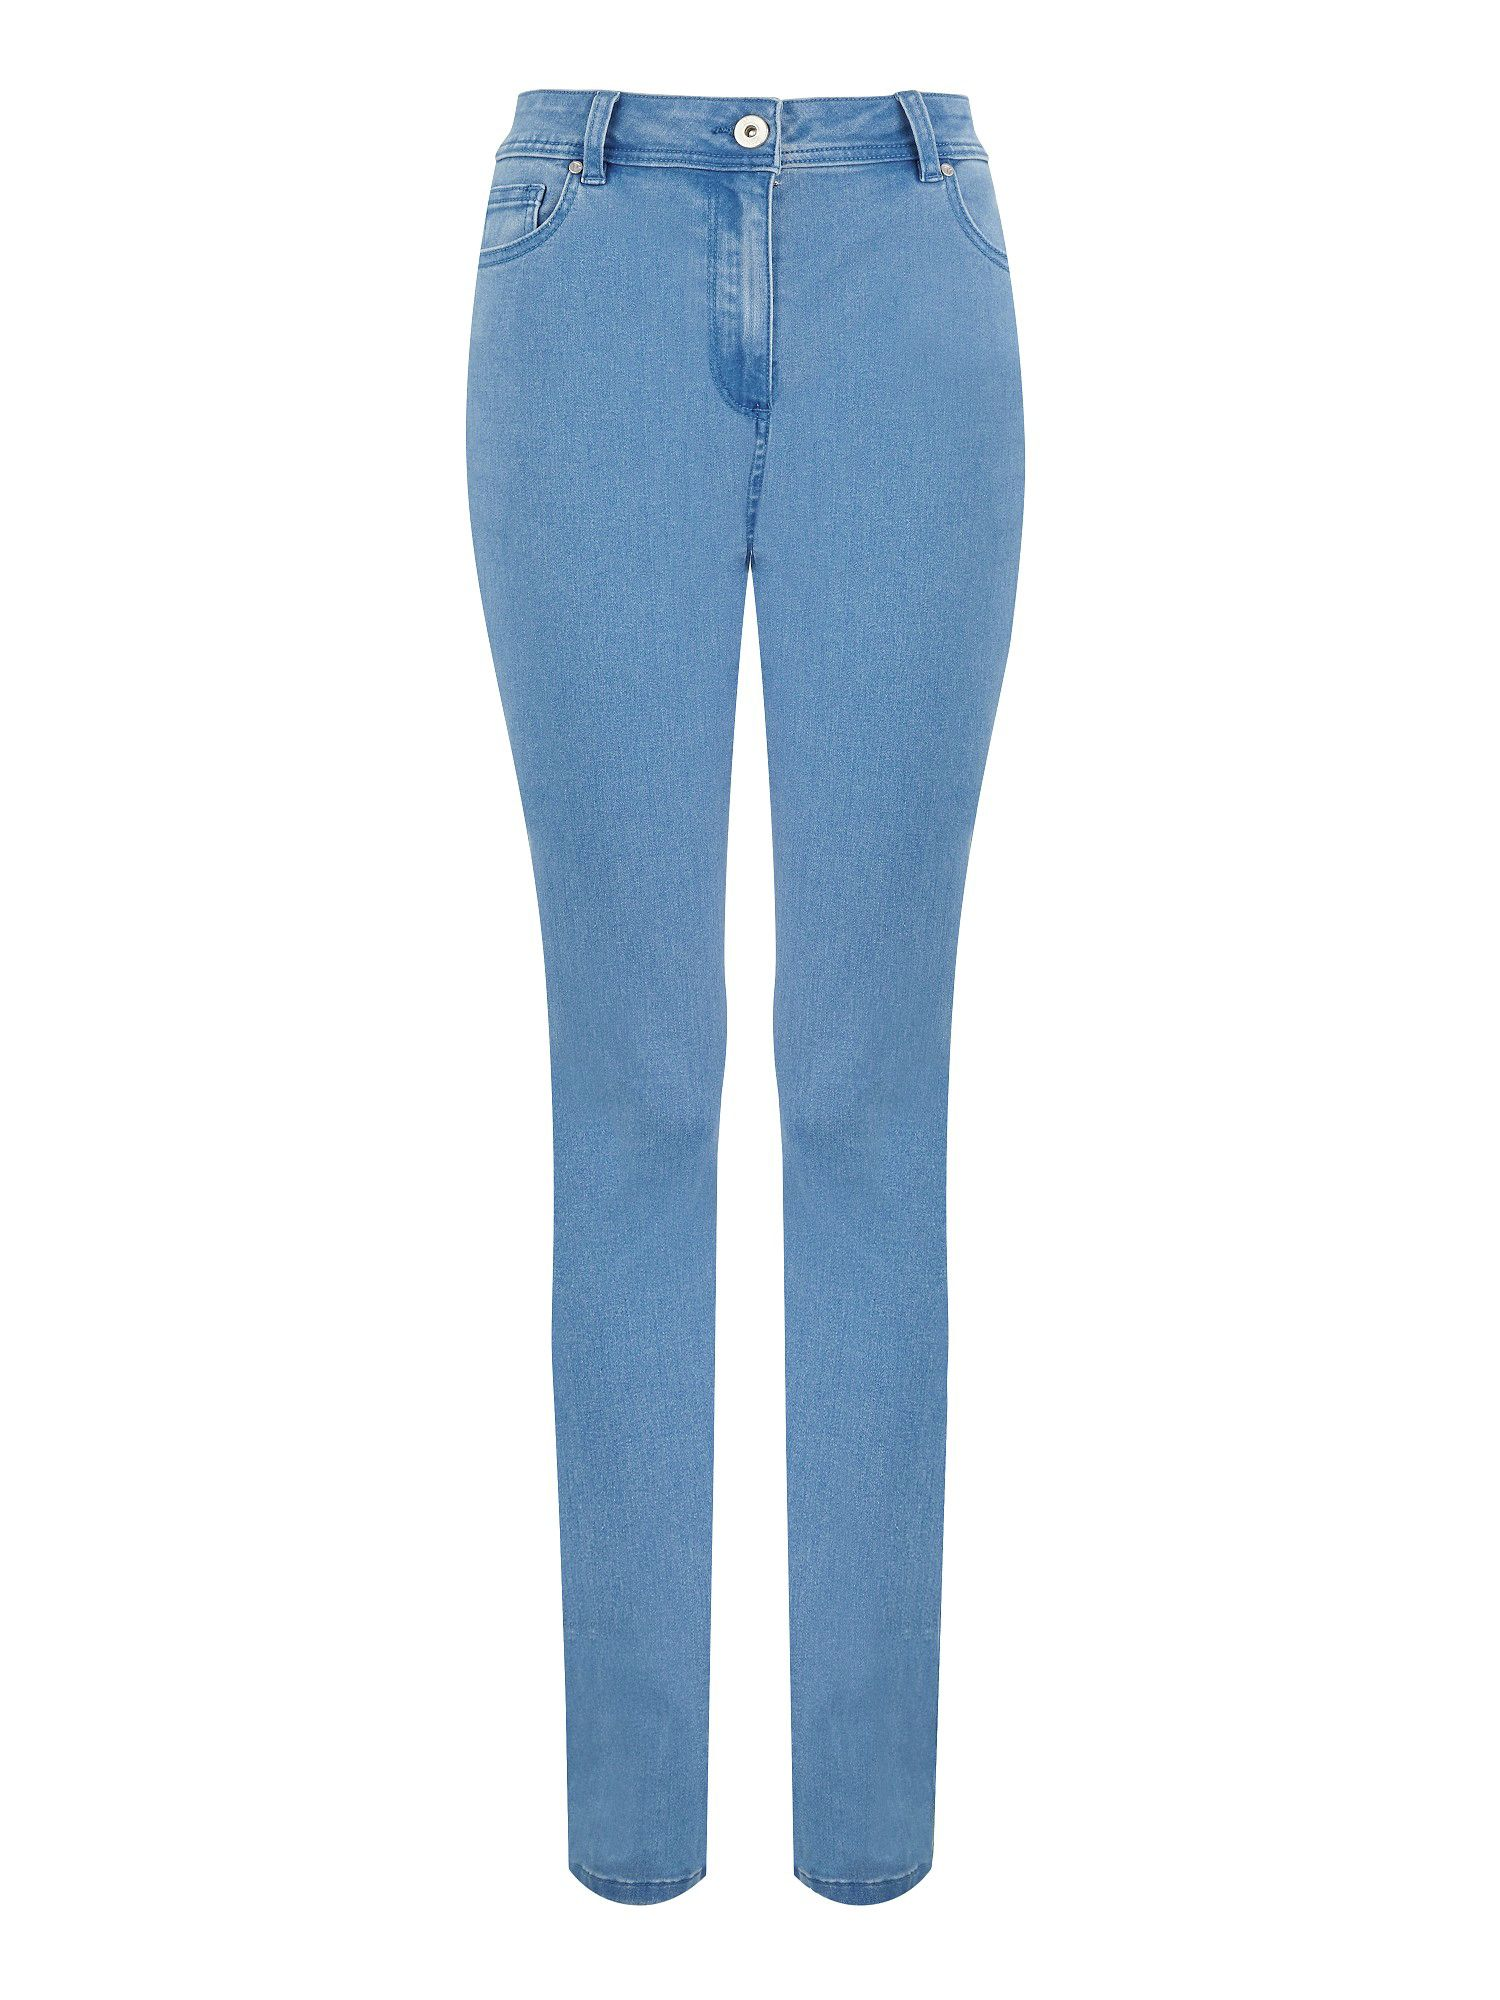 Light wash straight leg jean petite